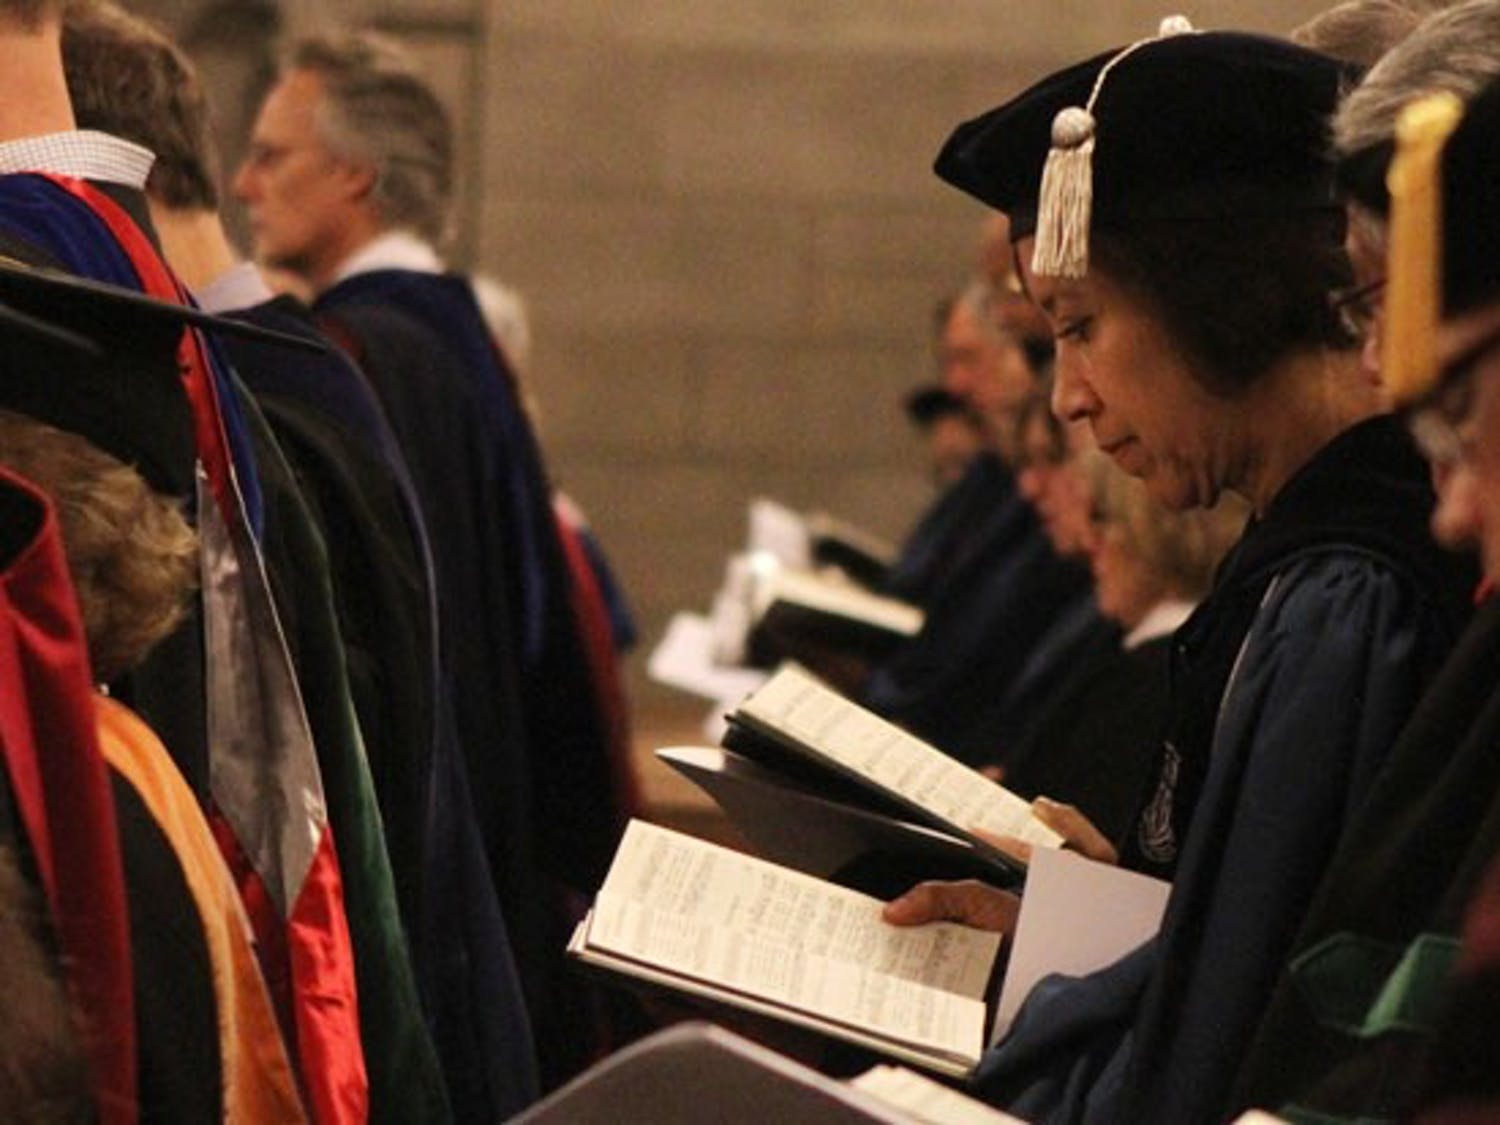 Members of the Duke faculty and administration sing the University's alma mater at the Founders' Day convocation that took place in the Duke Chapel Friday afternoon.